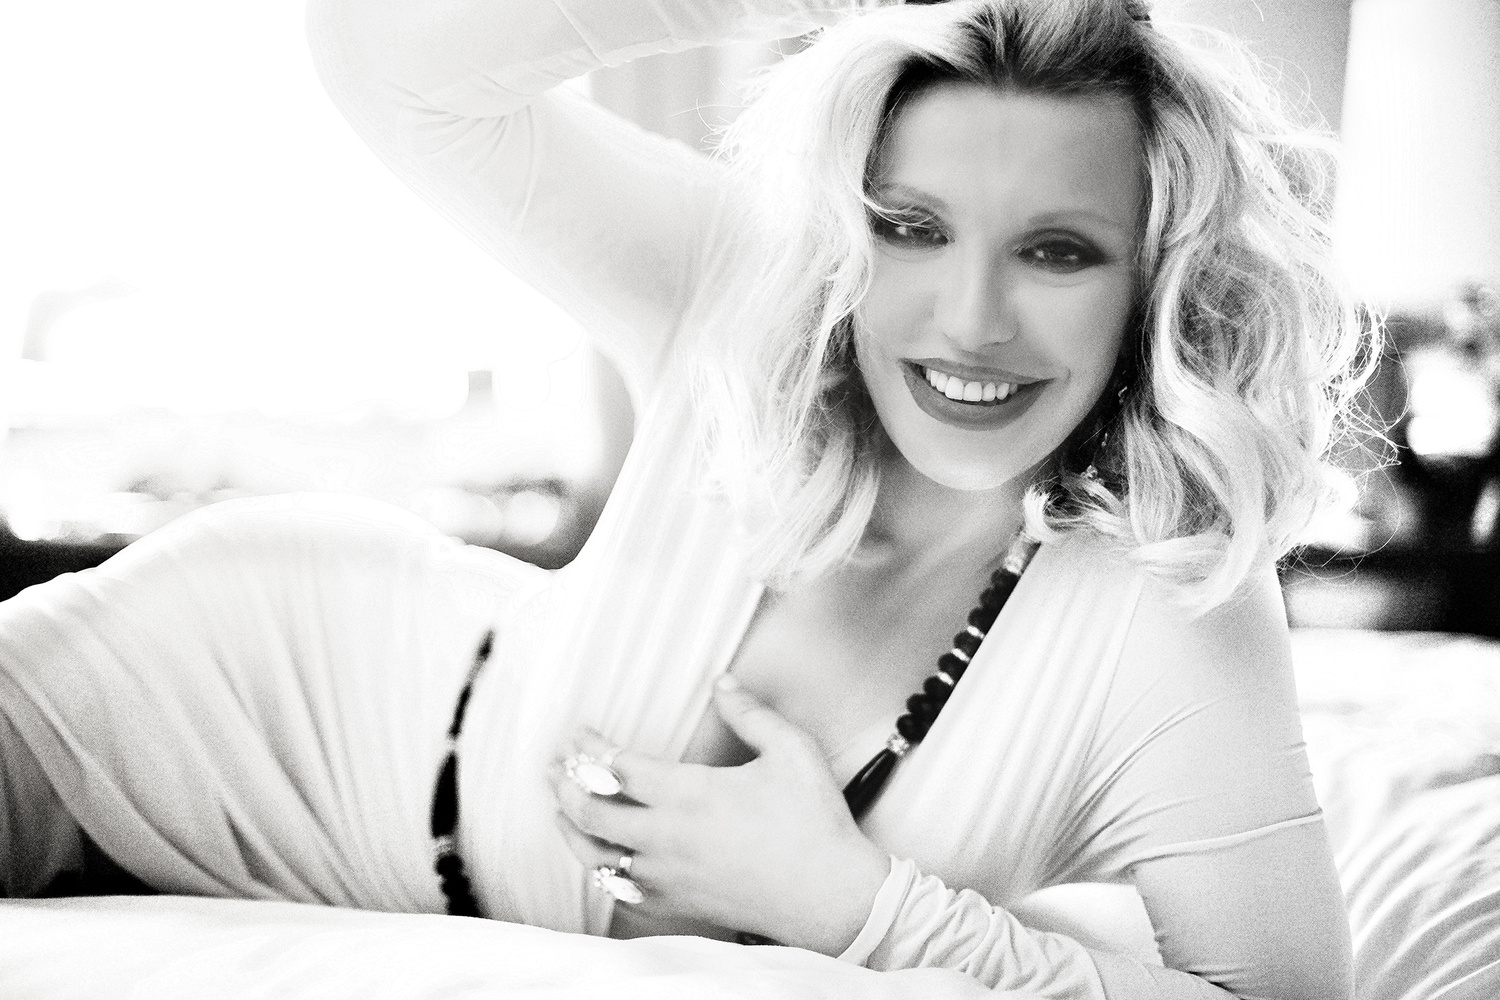 Courtney Love by Walid Azami